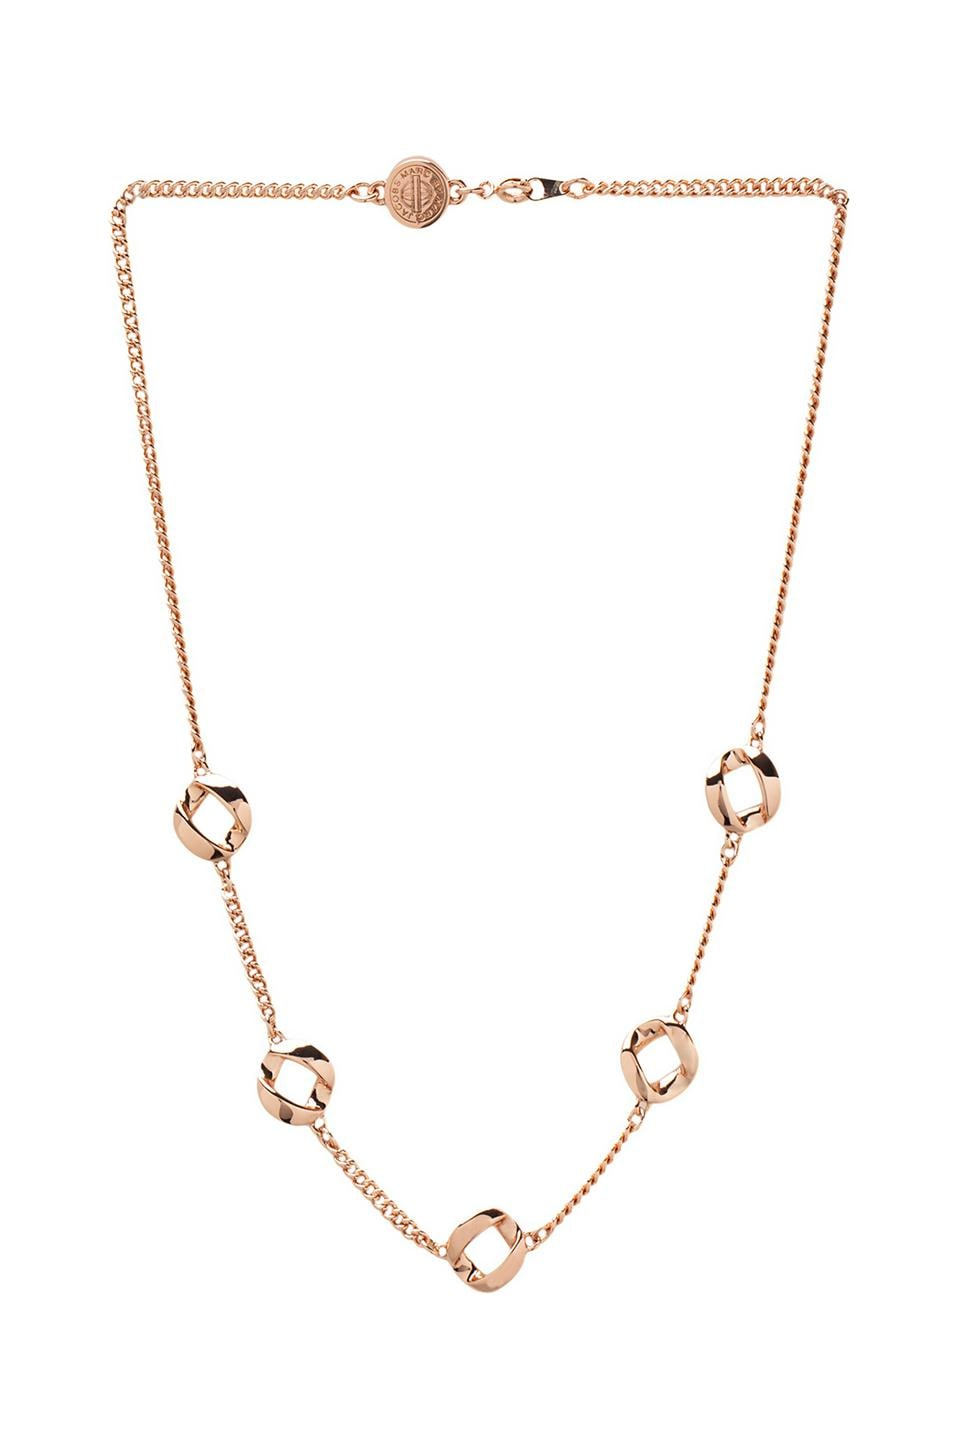 Marc by Marc Jacobs Linked Necklace in Rose Gold